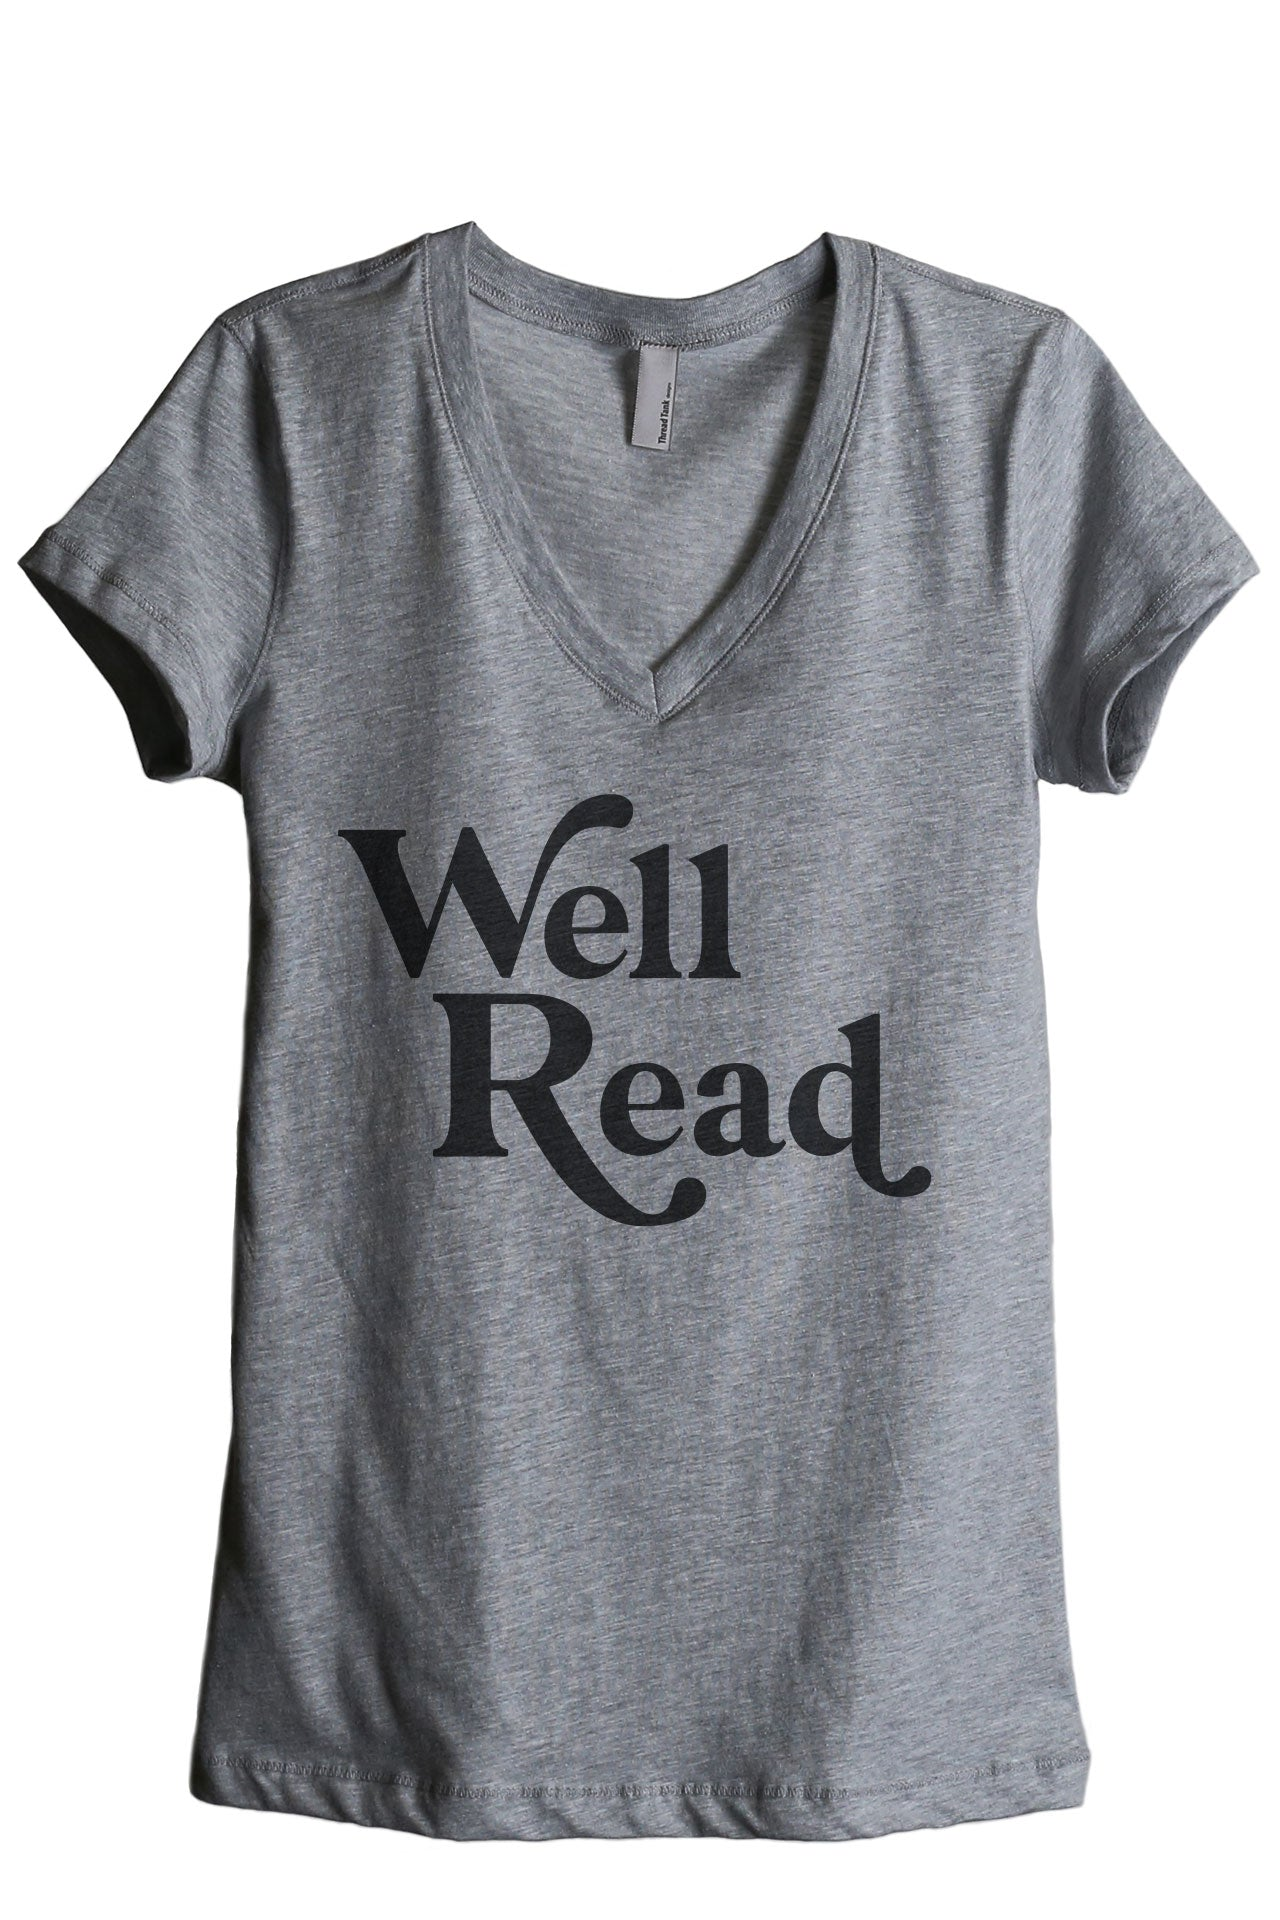 Well Read Women's Relaxed Crewneck T-Shirt Top Tee Heather Grey